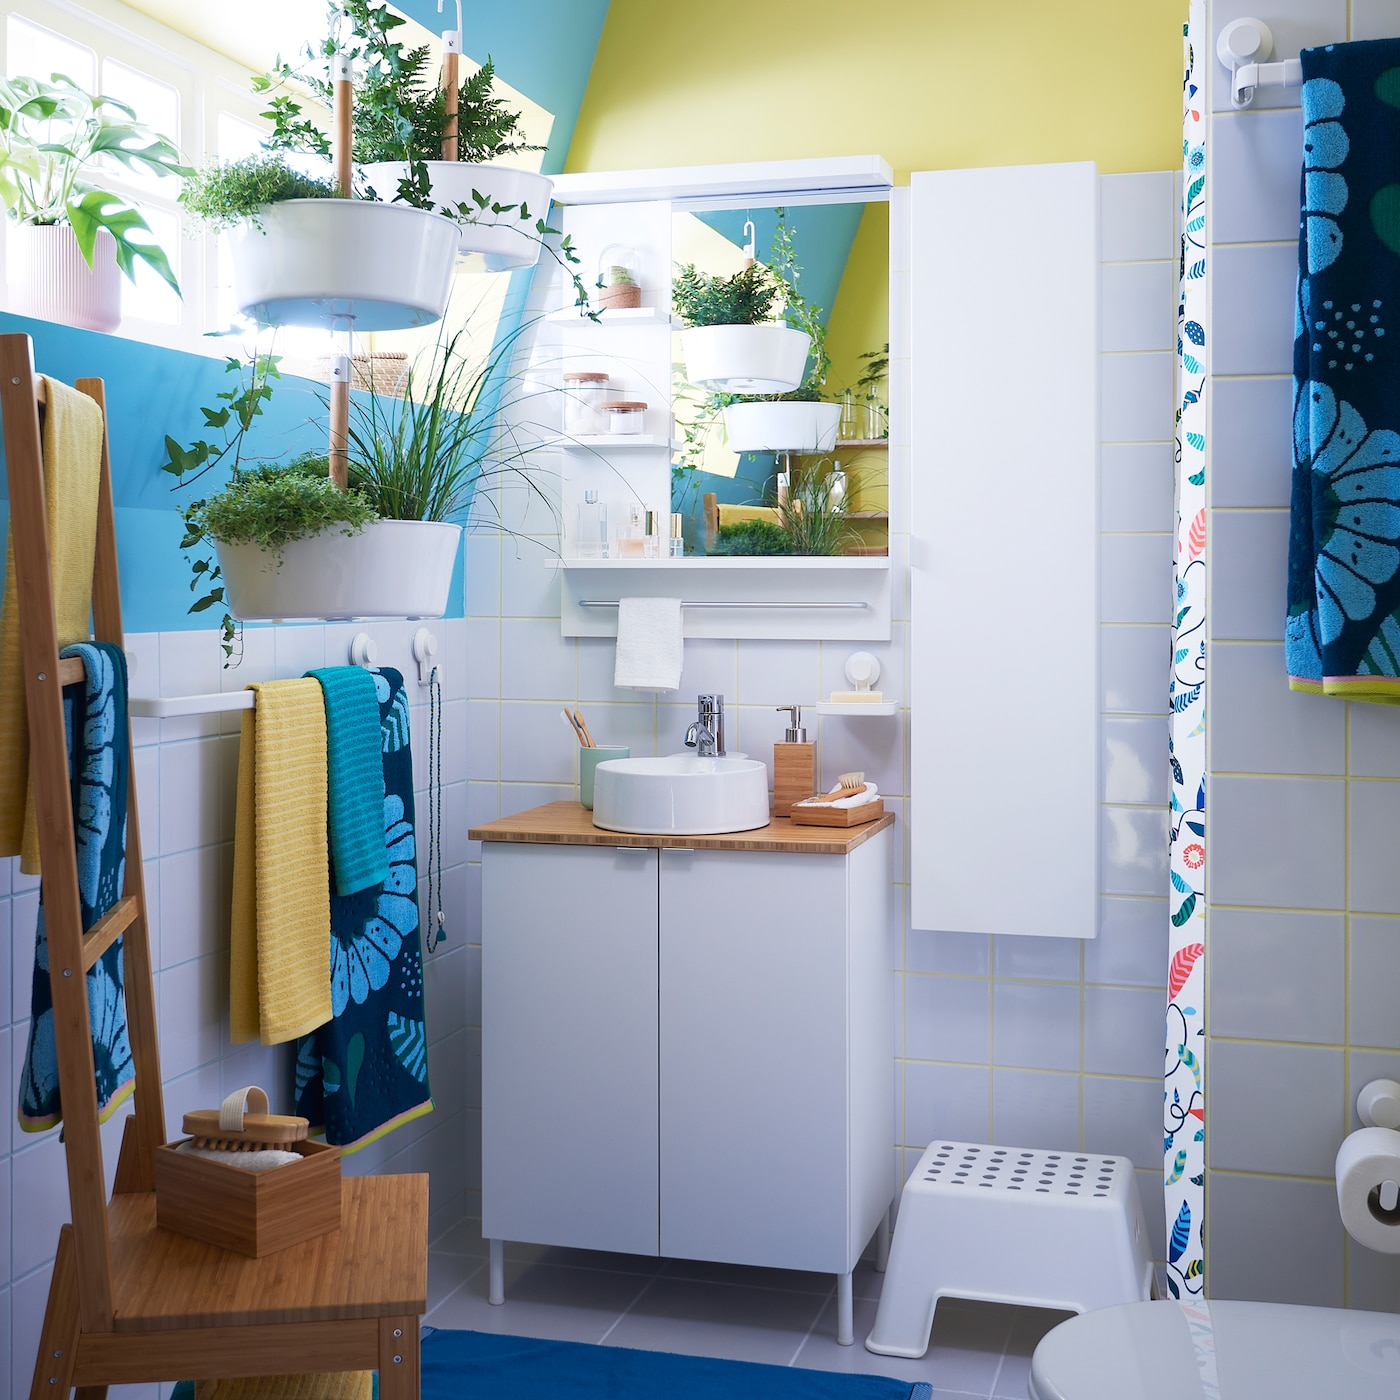 IKEA LILLÅNGEN bathroom furniture series is ideal for small space bathrooms and rentals with no-drill solutions. Refresh your bathroom with plants and SANDVILAN floral bath towels in bright blue and dark green.